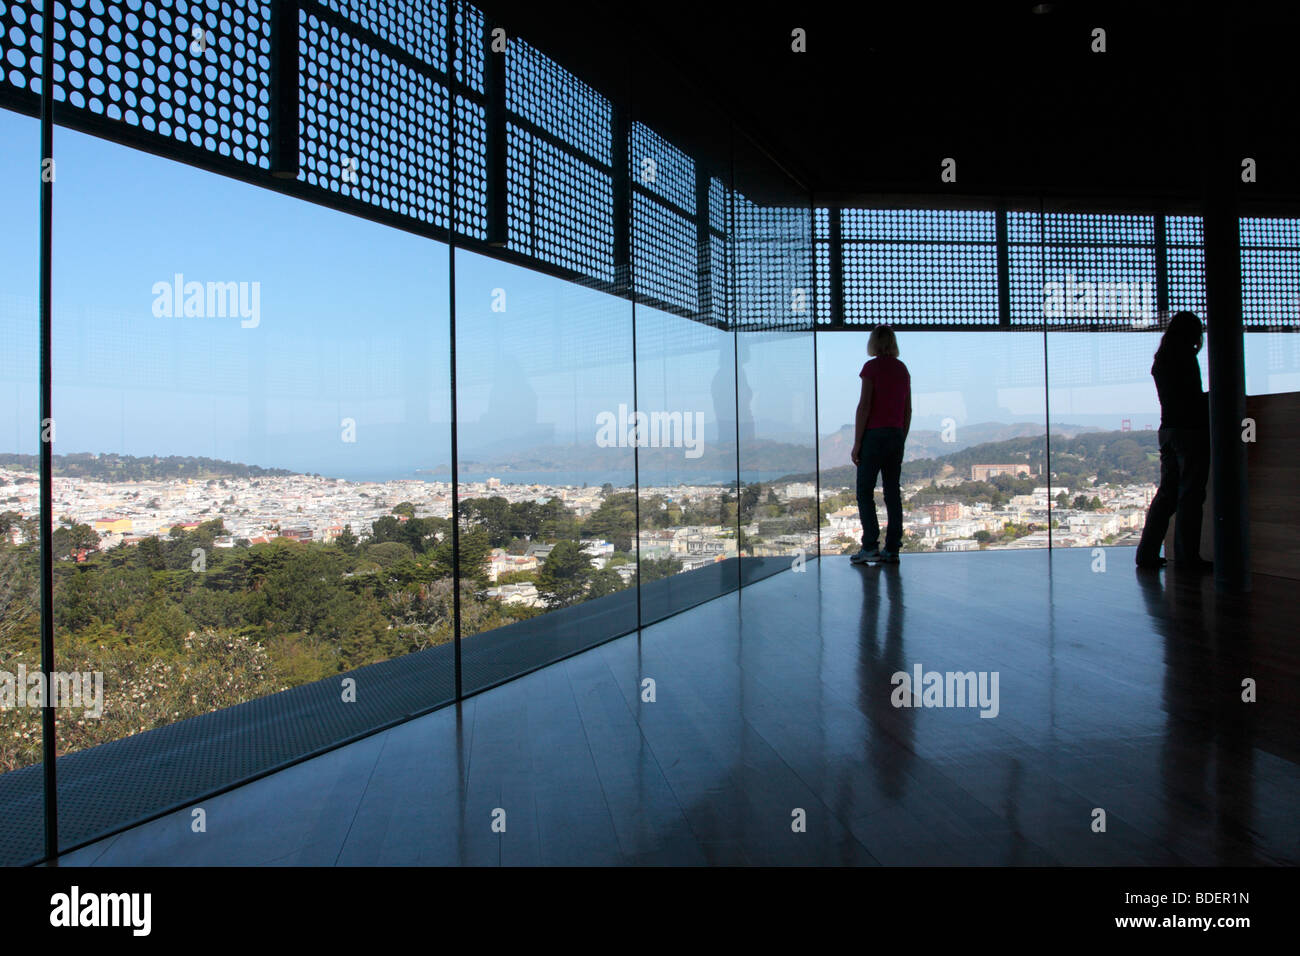 The view from the observation deck on the Hamon tower of the de Young museum in the Golden Gate Park San Francisco - Stock Image